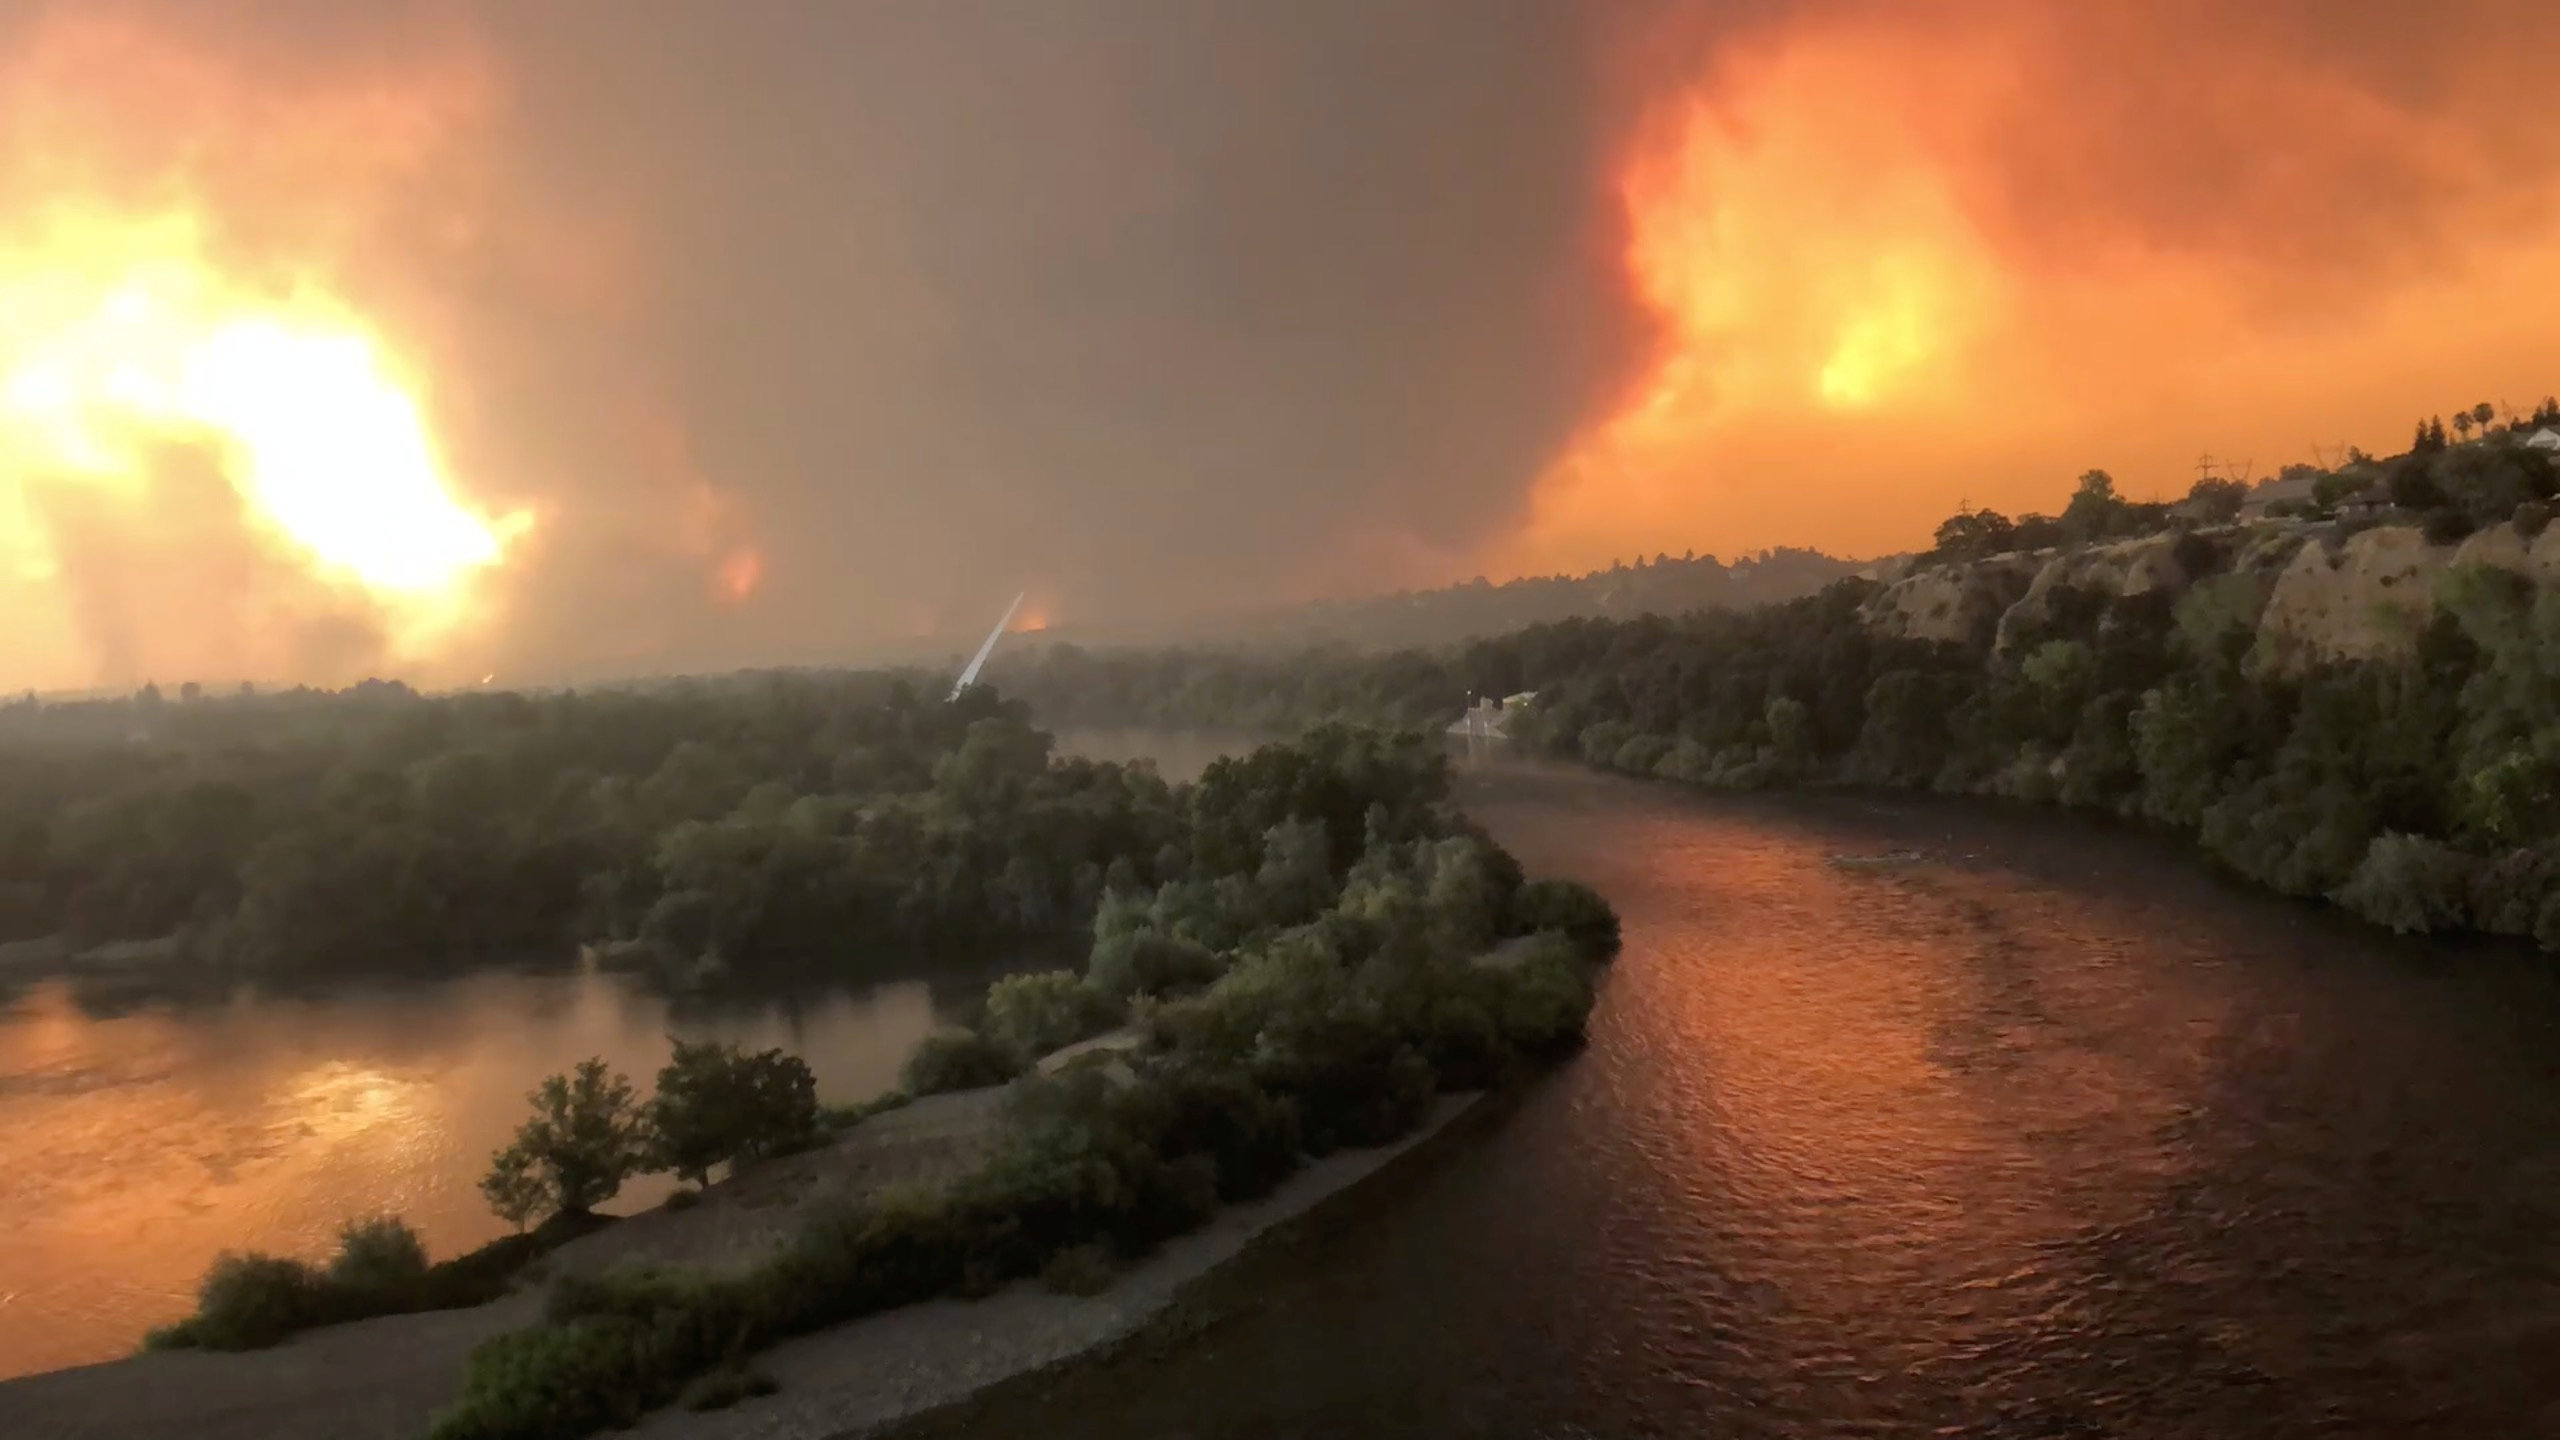 Smoke and flames are seen as a wildfire spreads through Redding, California, the U.S., July 26, 2018, in this still image taken from a video obtained from social media. Cody Markhart/via REUTERS